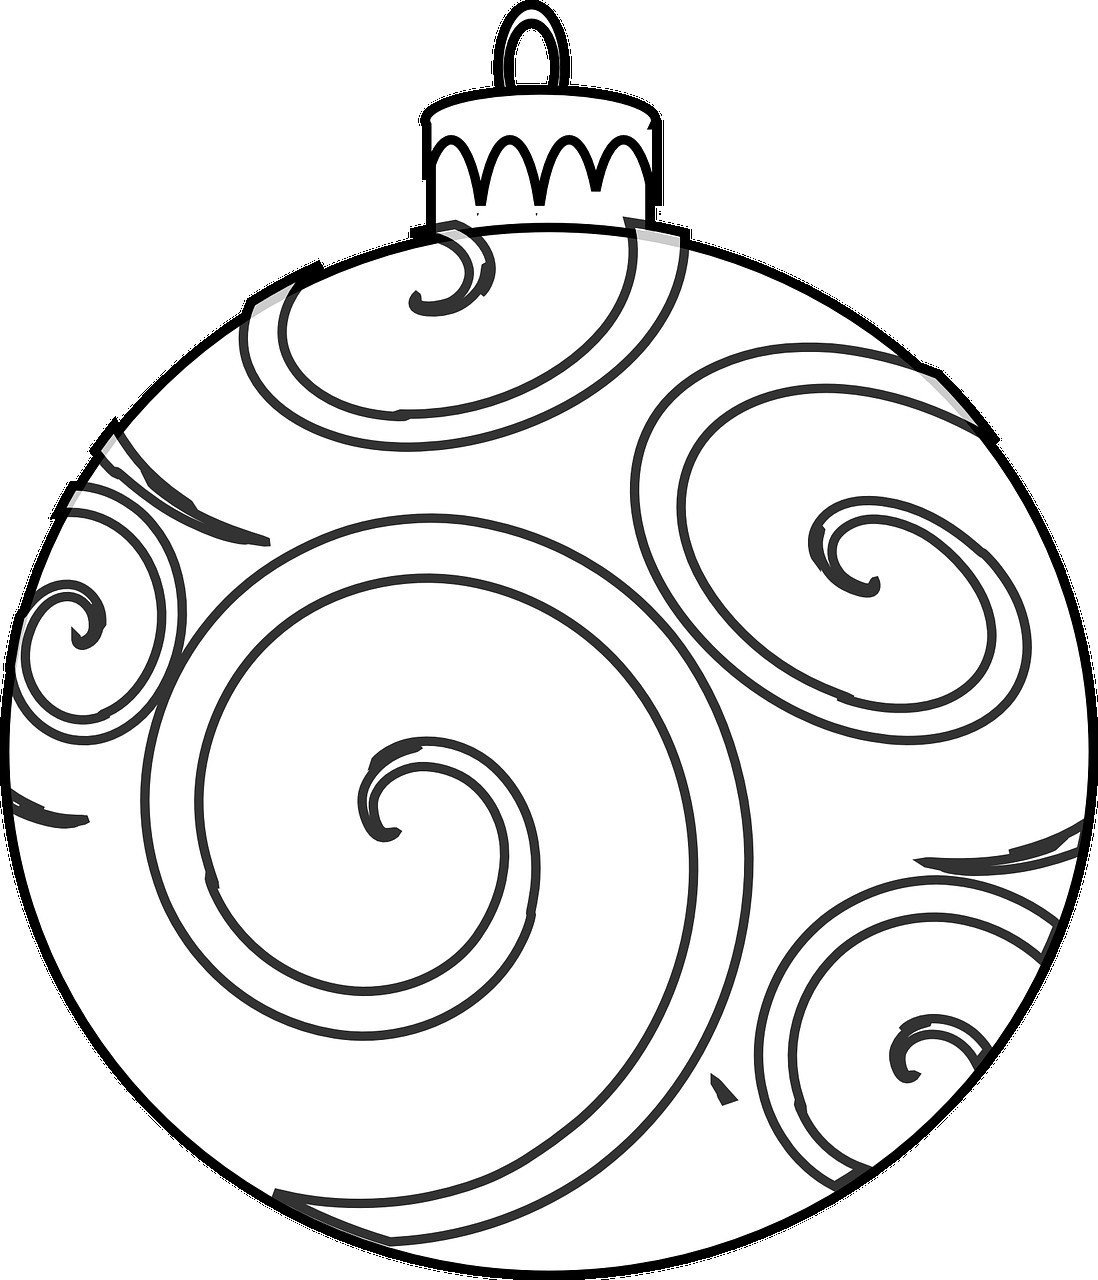 Christmas Ball Printable Coloring Pages With Decorations Page For Kids